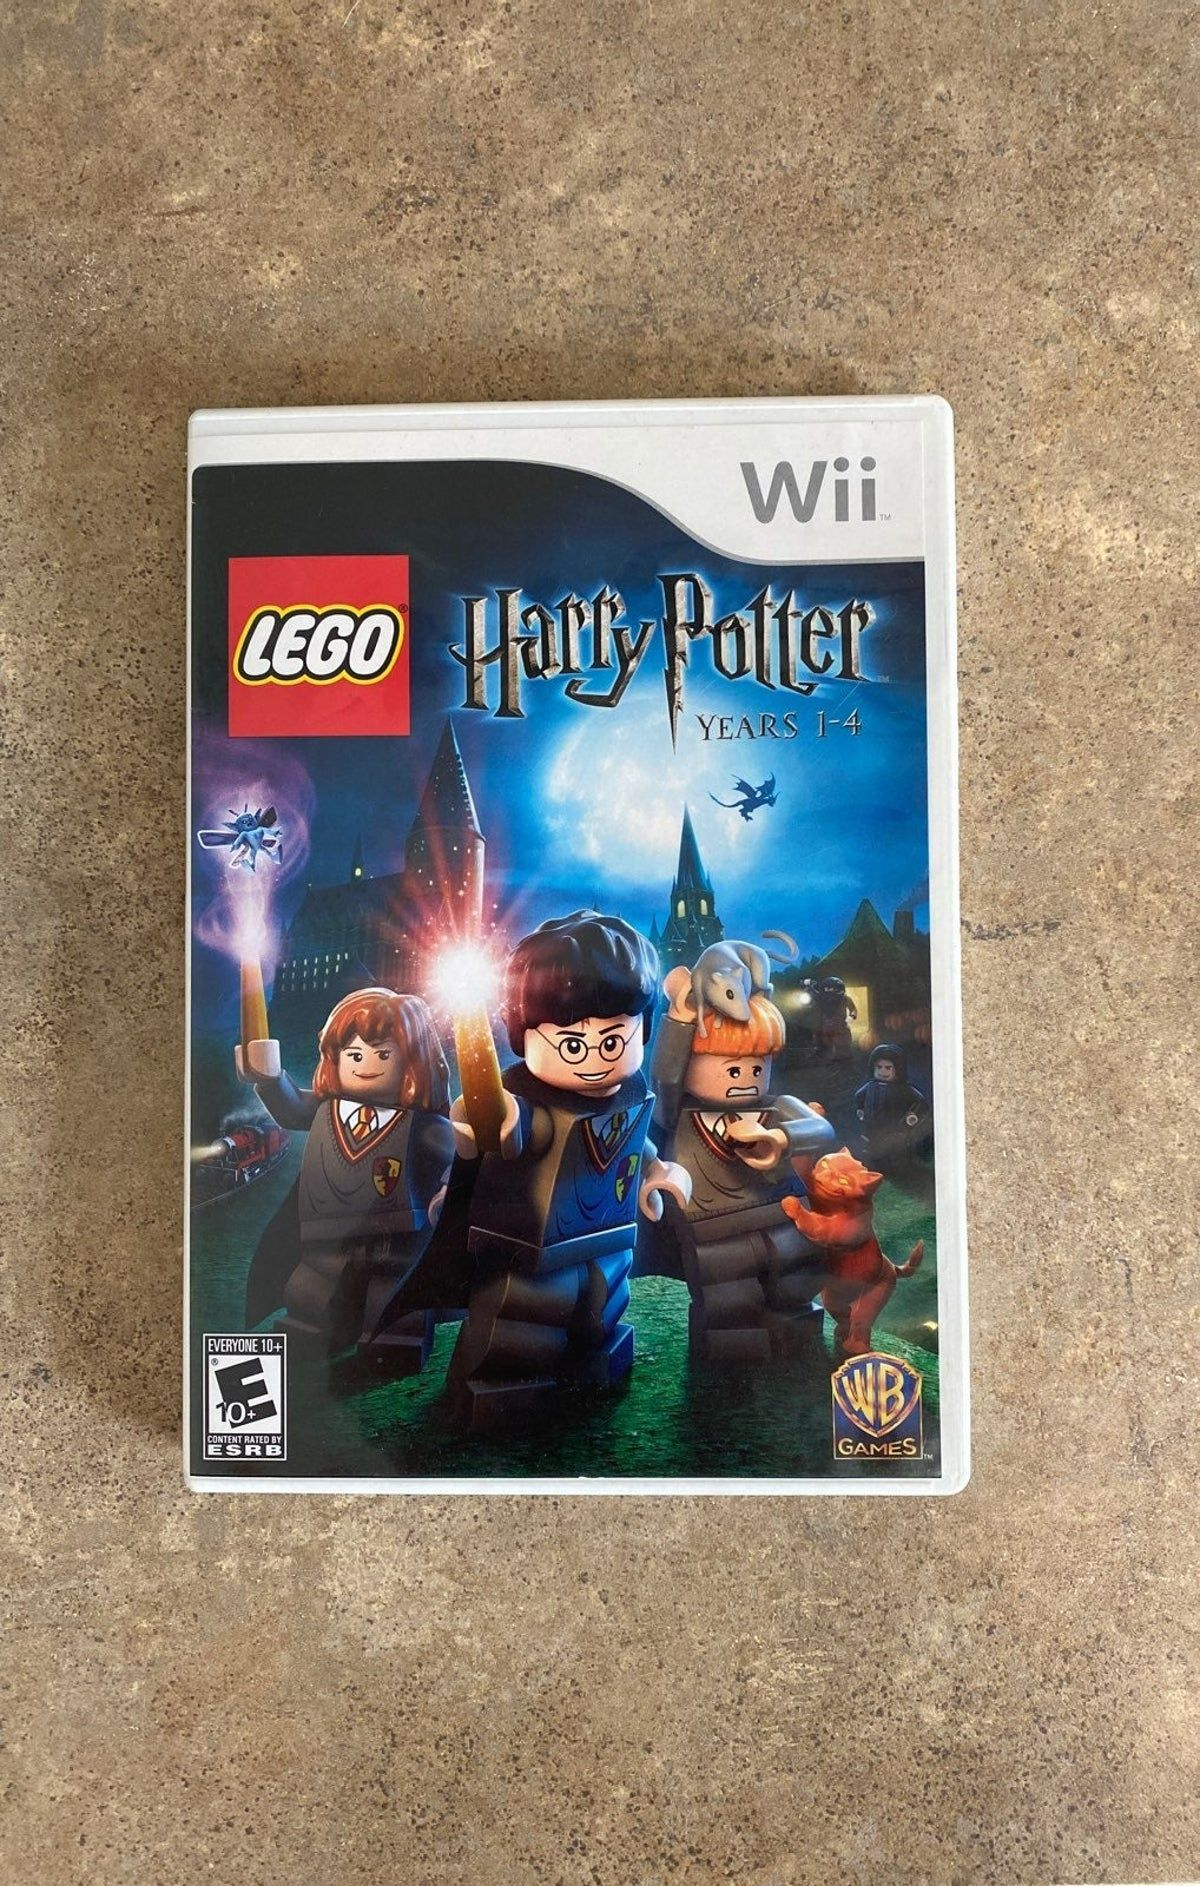 Harry Potter Lego Wii Game Harry Potter Games Lego Harry Potter Wii Games